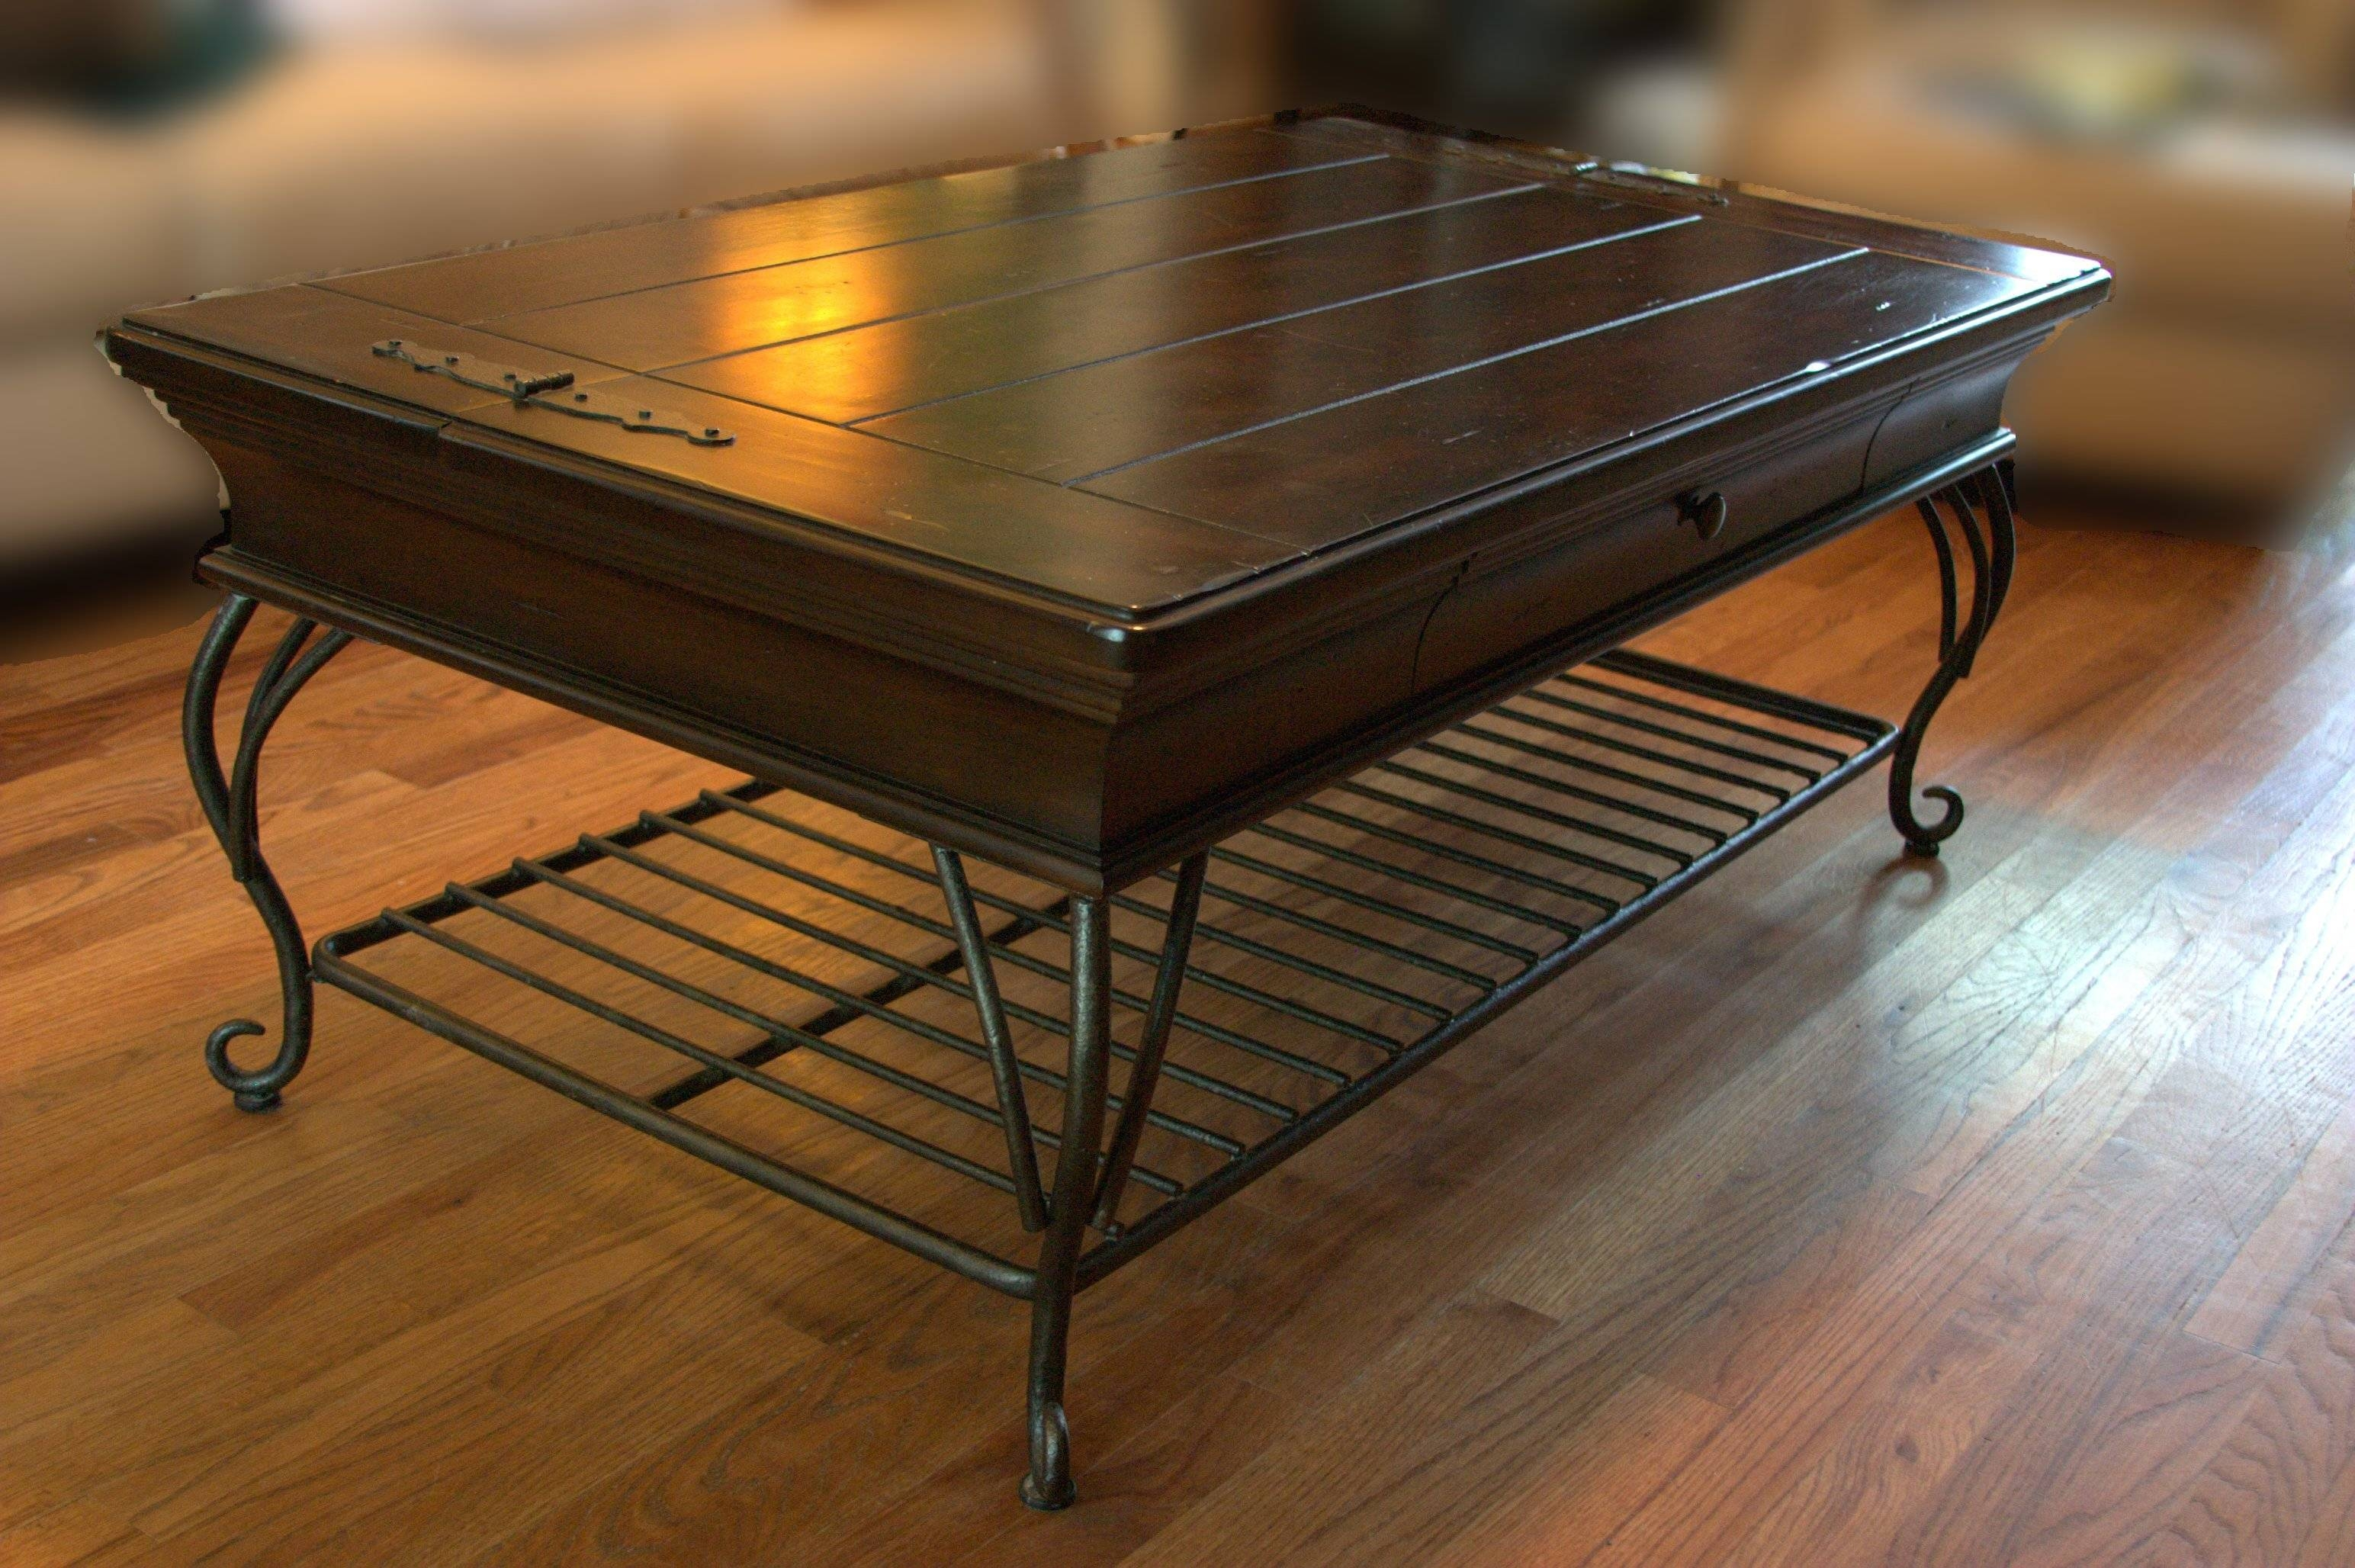 Coffee Table: Astonishing Iron And Wood Coffee Table Design Ideas pertaining to Square Dark Wood Coffee Tables (Image 5 of 30)